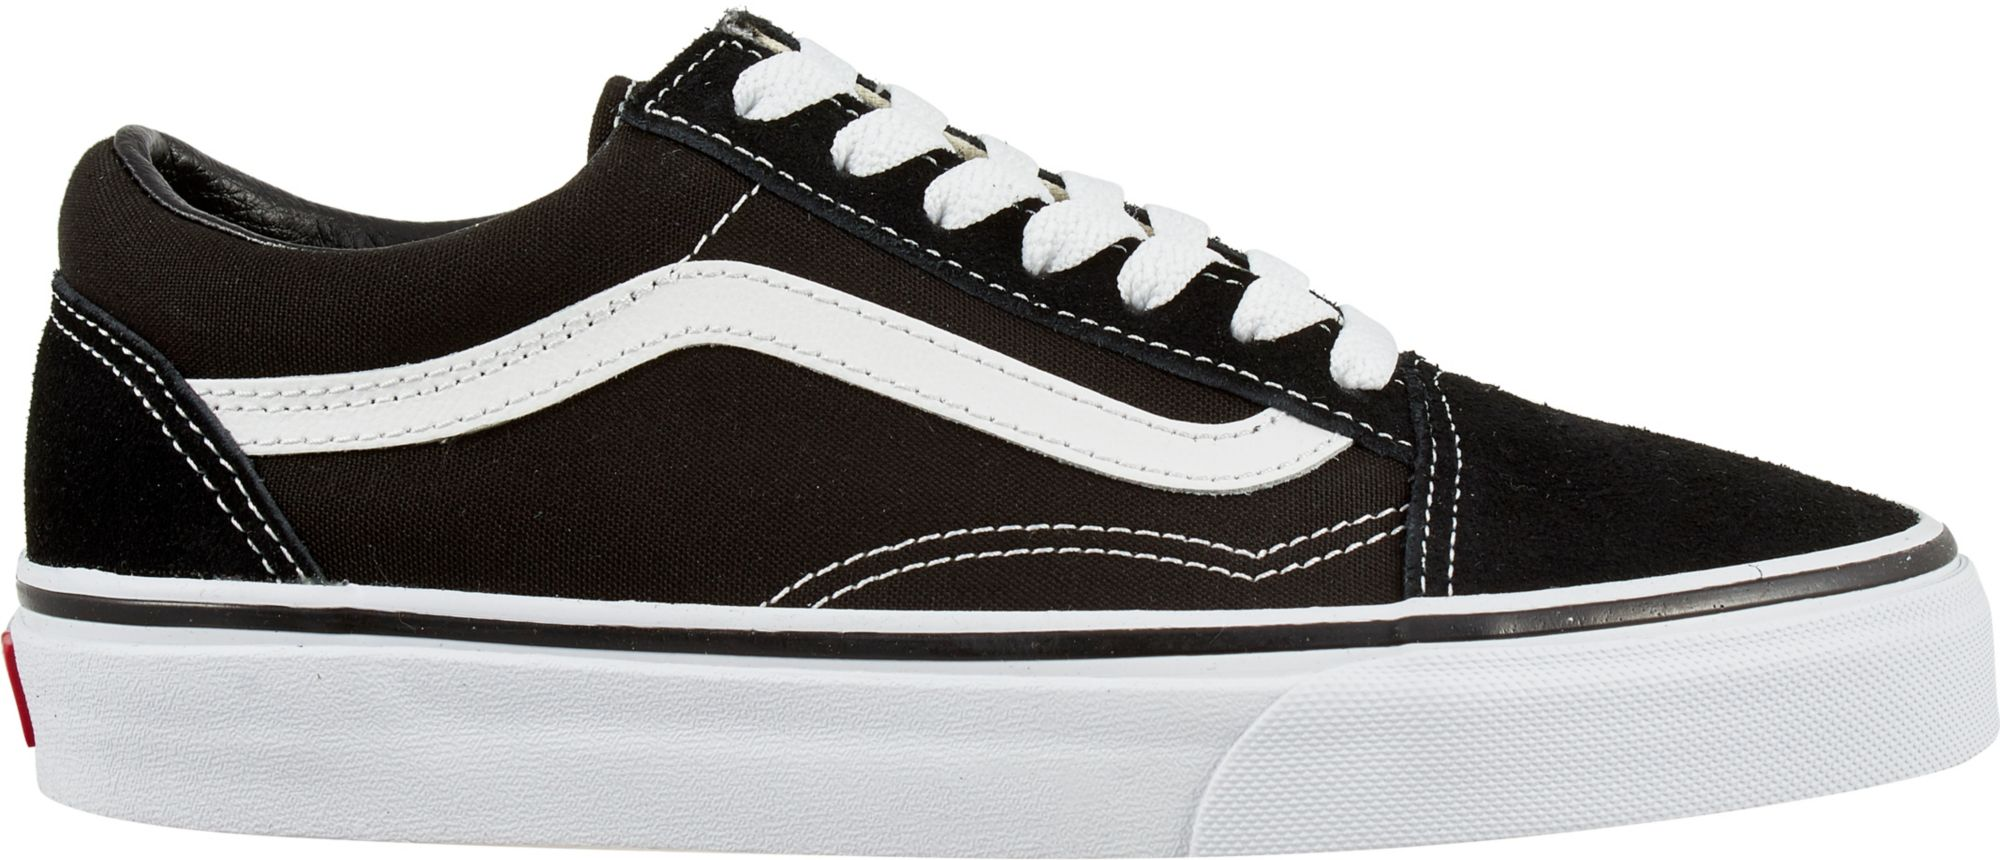 old skool vans black